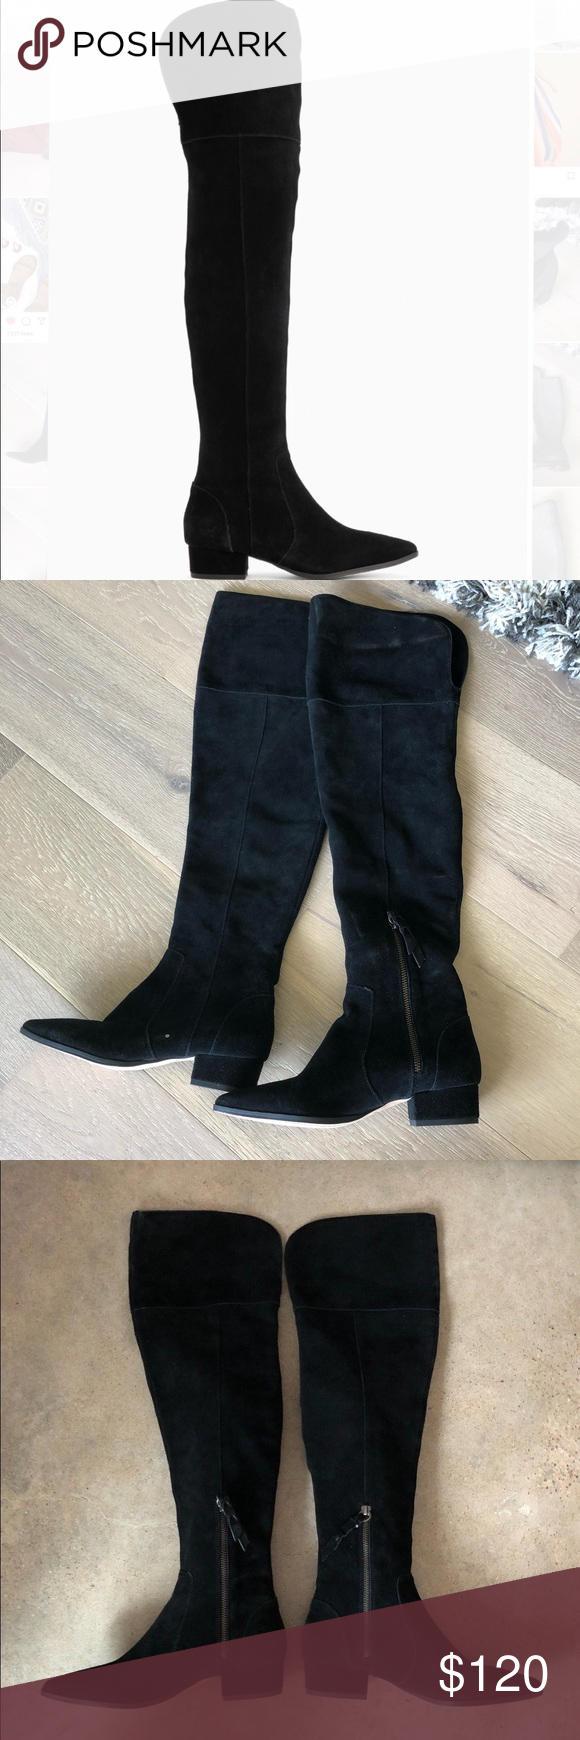 c3e489a9822 Splendid knee highs boots Splendid ruby black suede flat over the knee  boots Splendid Shoes Over the Knee Boots